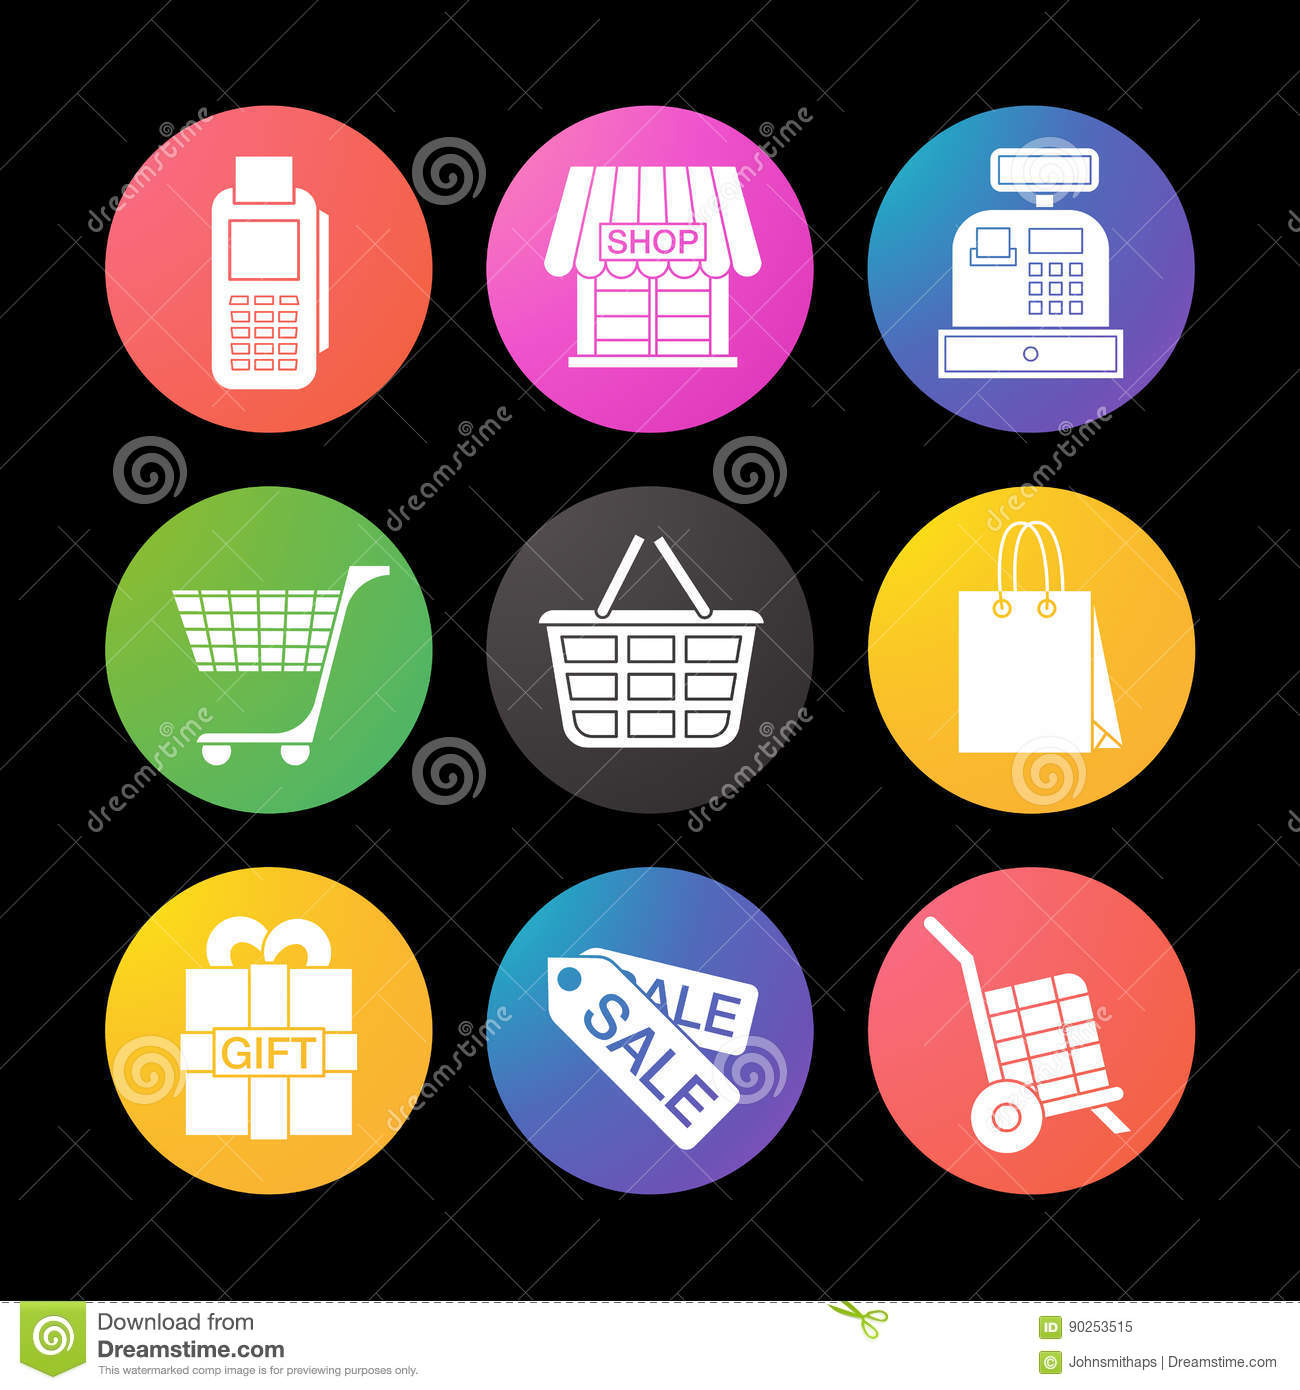 A Sample Gift Basket Business Plan Template